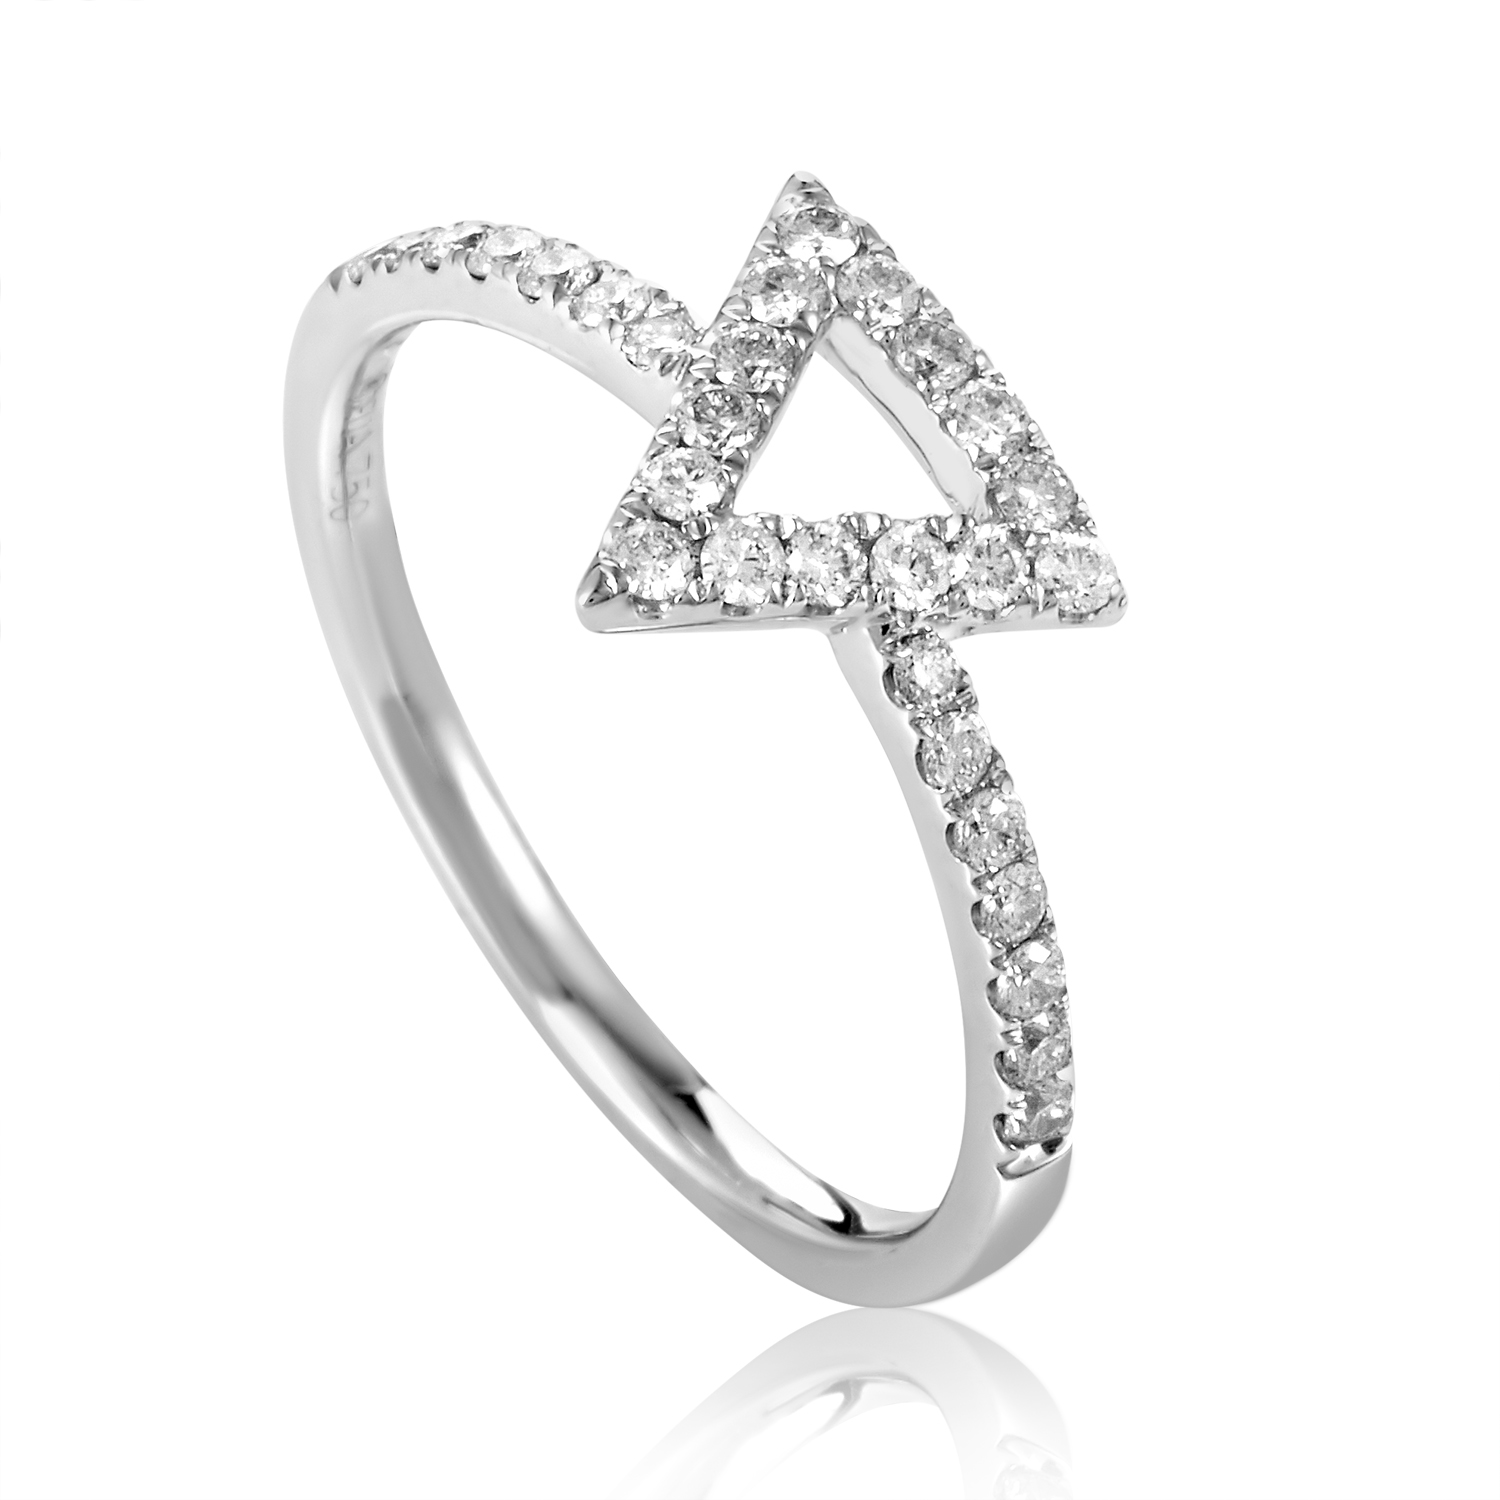 Women's 18K White Gold Diamond Triangle Ring ALR-10347W